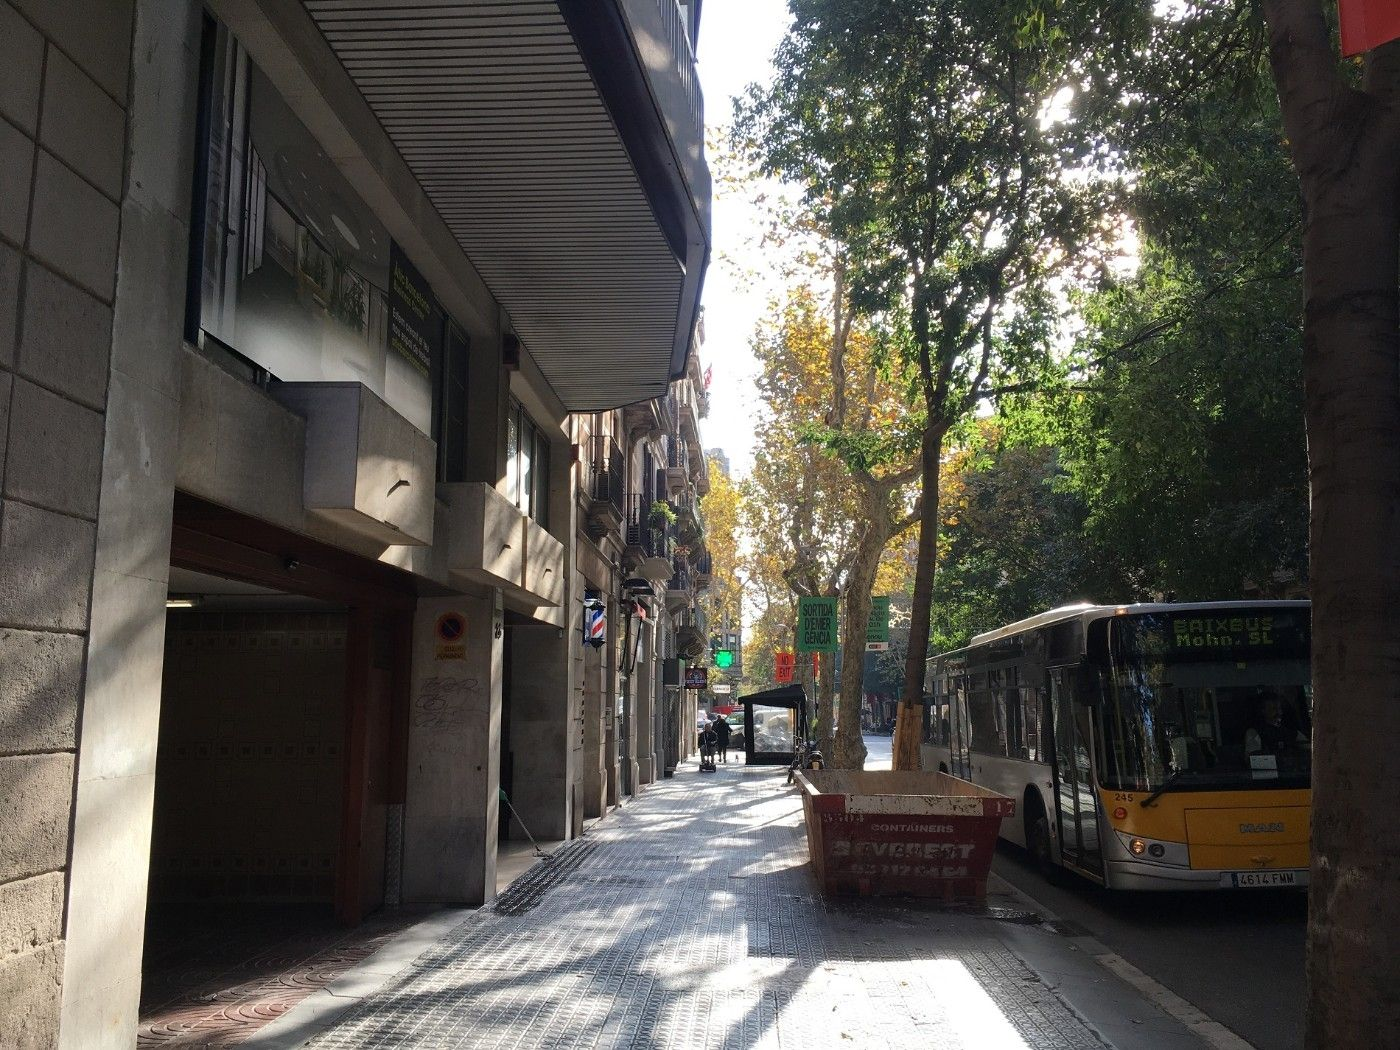 Alquiler Parking coche en Carrer aribau, 28. Plaza de parking en eixample